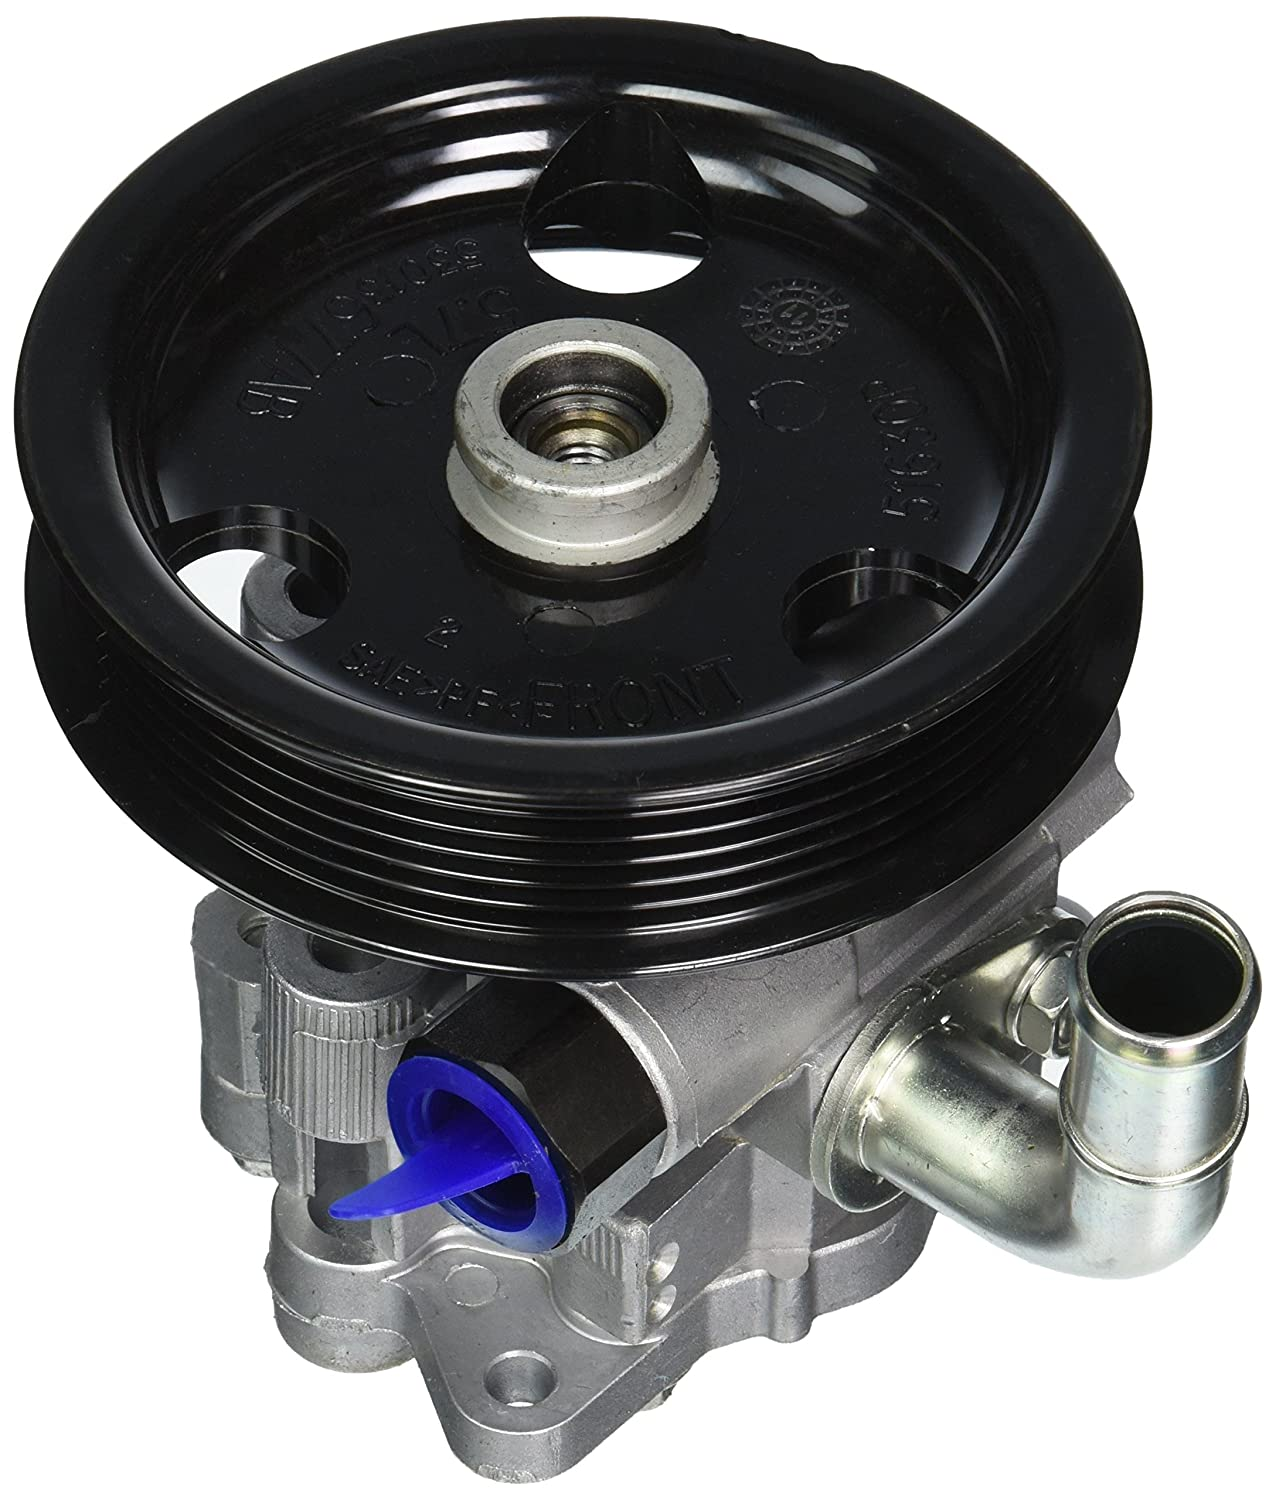 Genuine Chrysler 52089883AD Power Steering Pump with Pulley